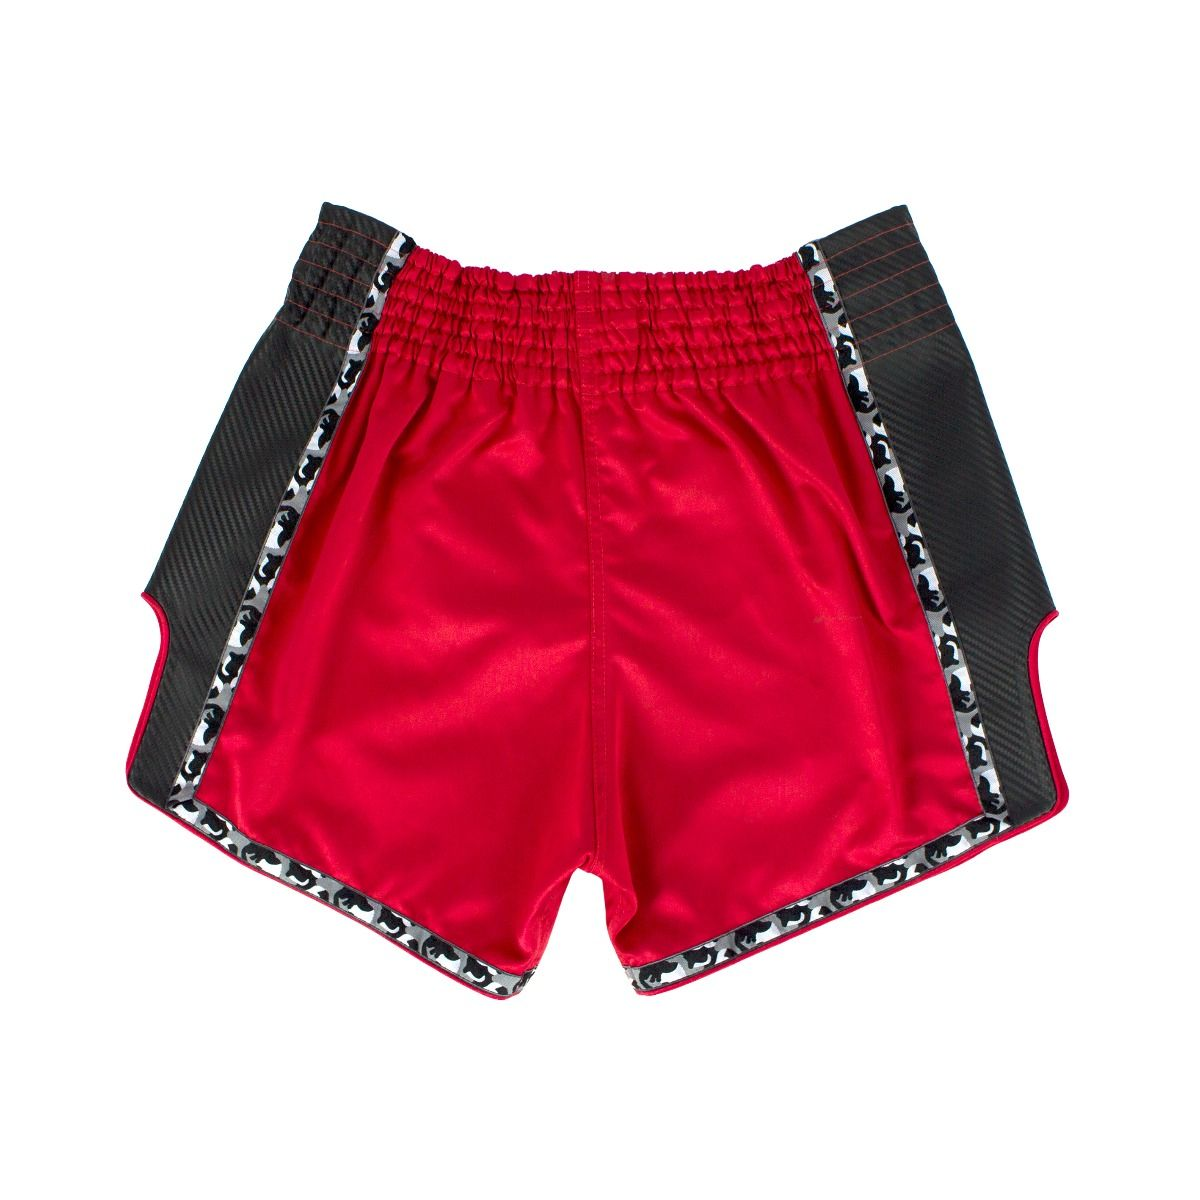 FAIRTEX THAI SHORTS SLIM CUT SATIN RED/BLACK